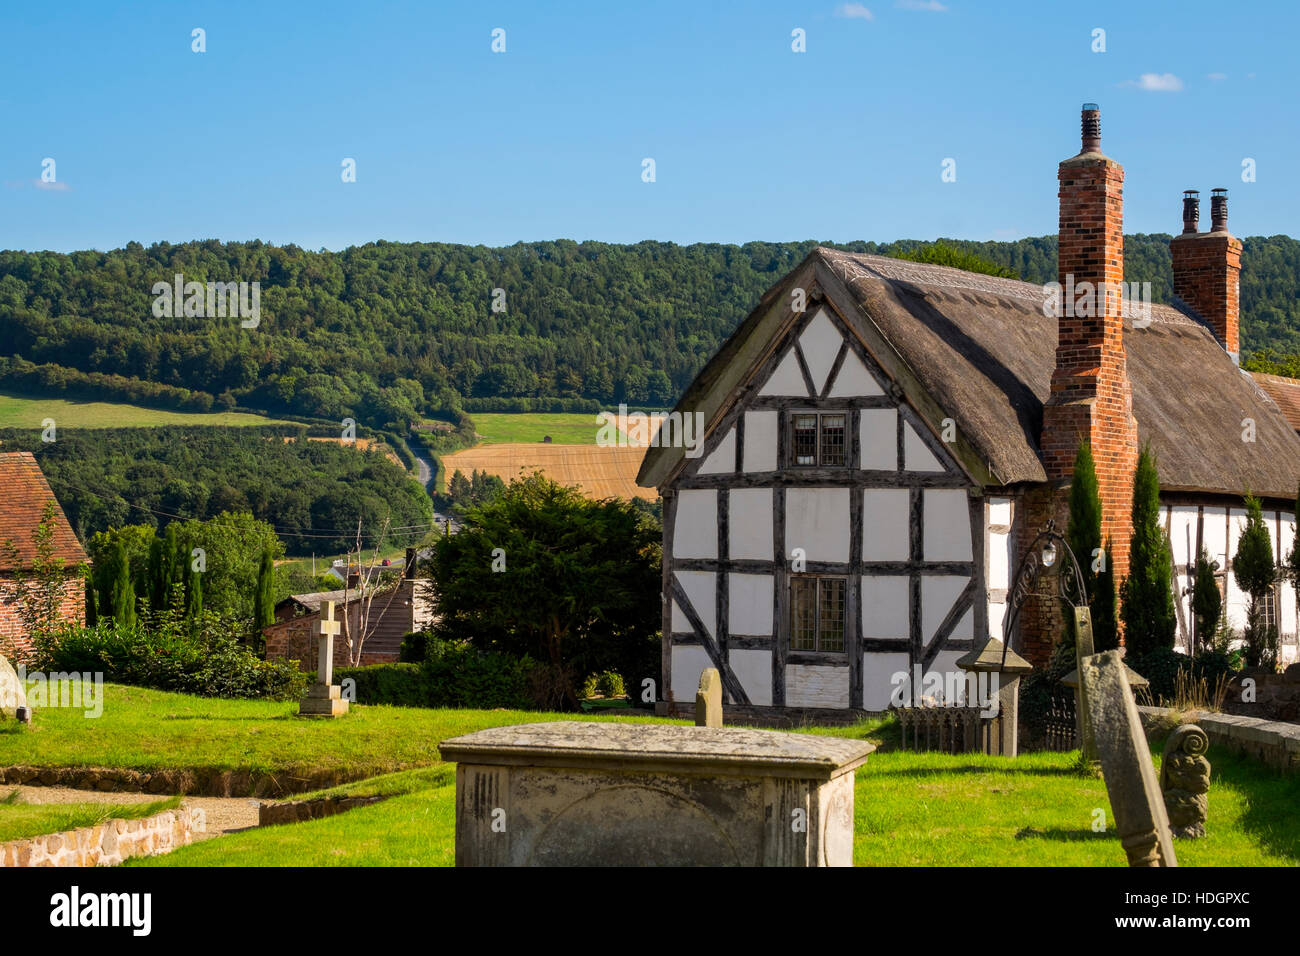 Black and White thatched cottage at Harley, Shropshire, with Wenlock Edge in the background, England, UK - Stock Image